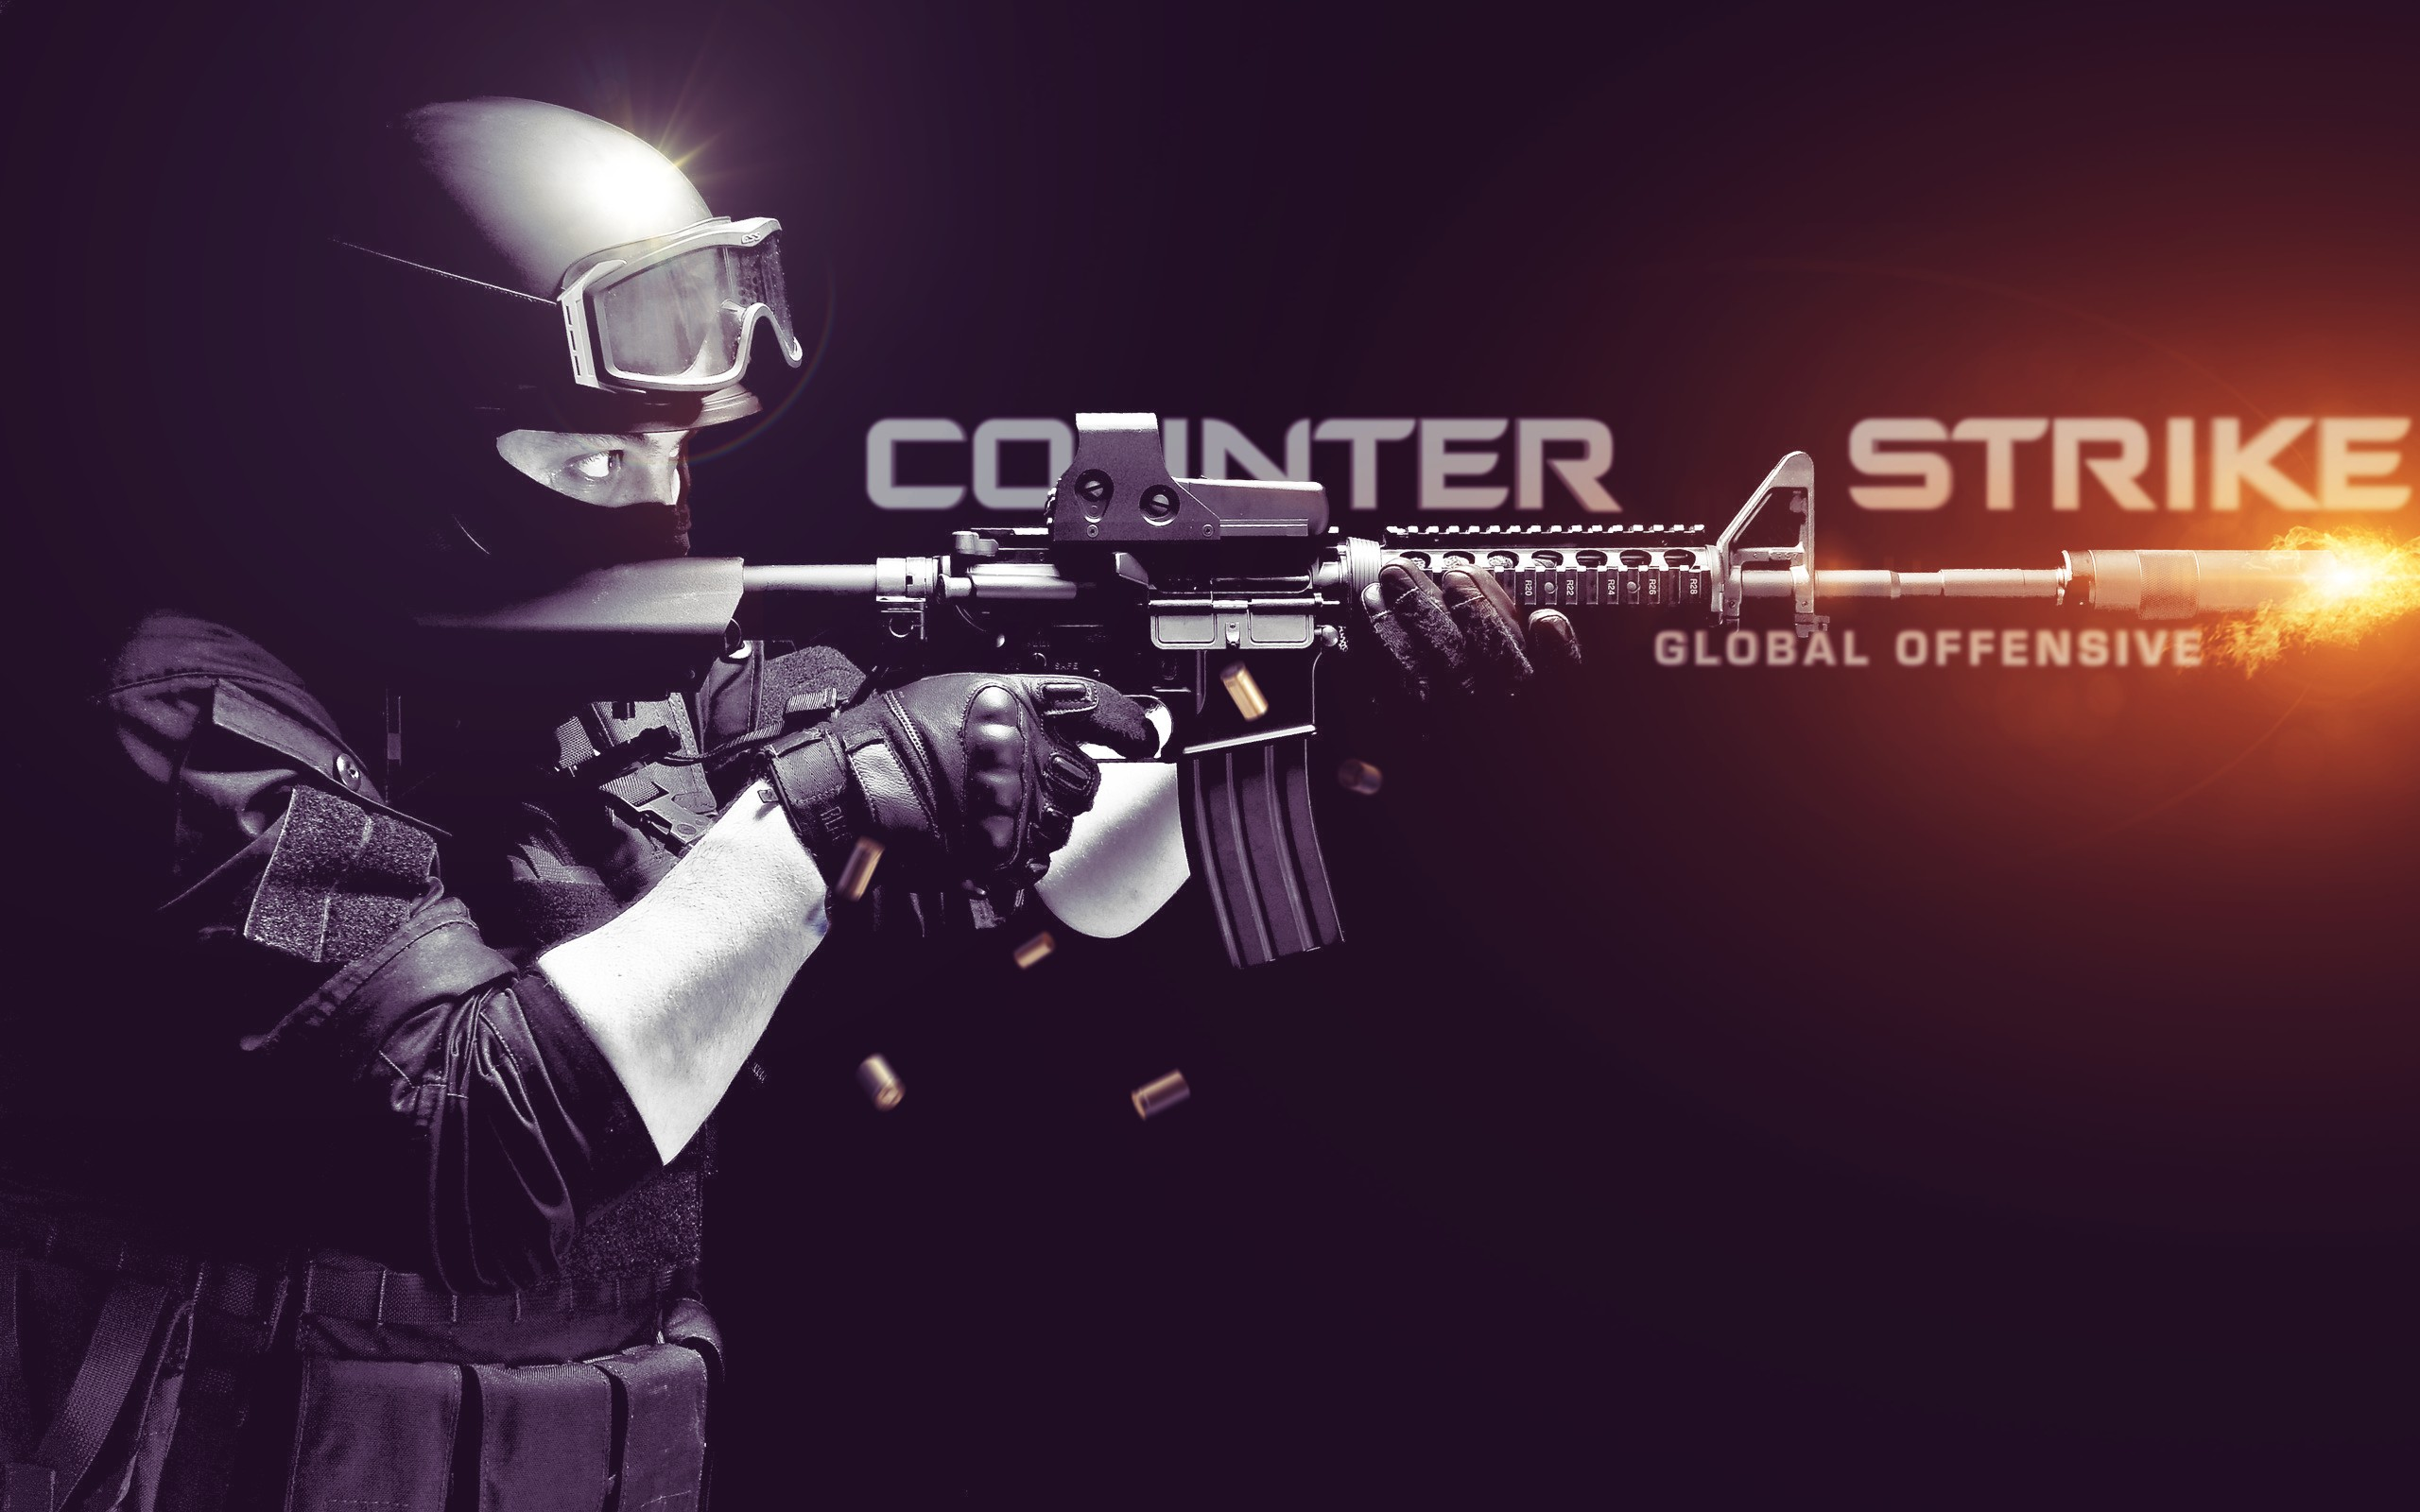 Csgo Wallpaper Download Free Beautiful Hd Wallpapers For